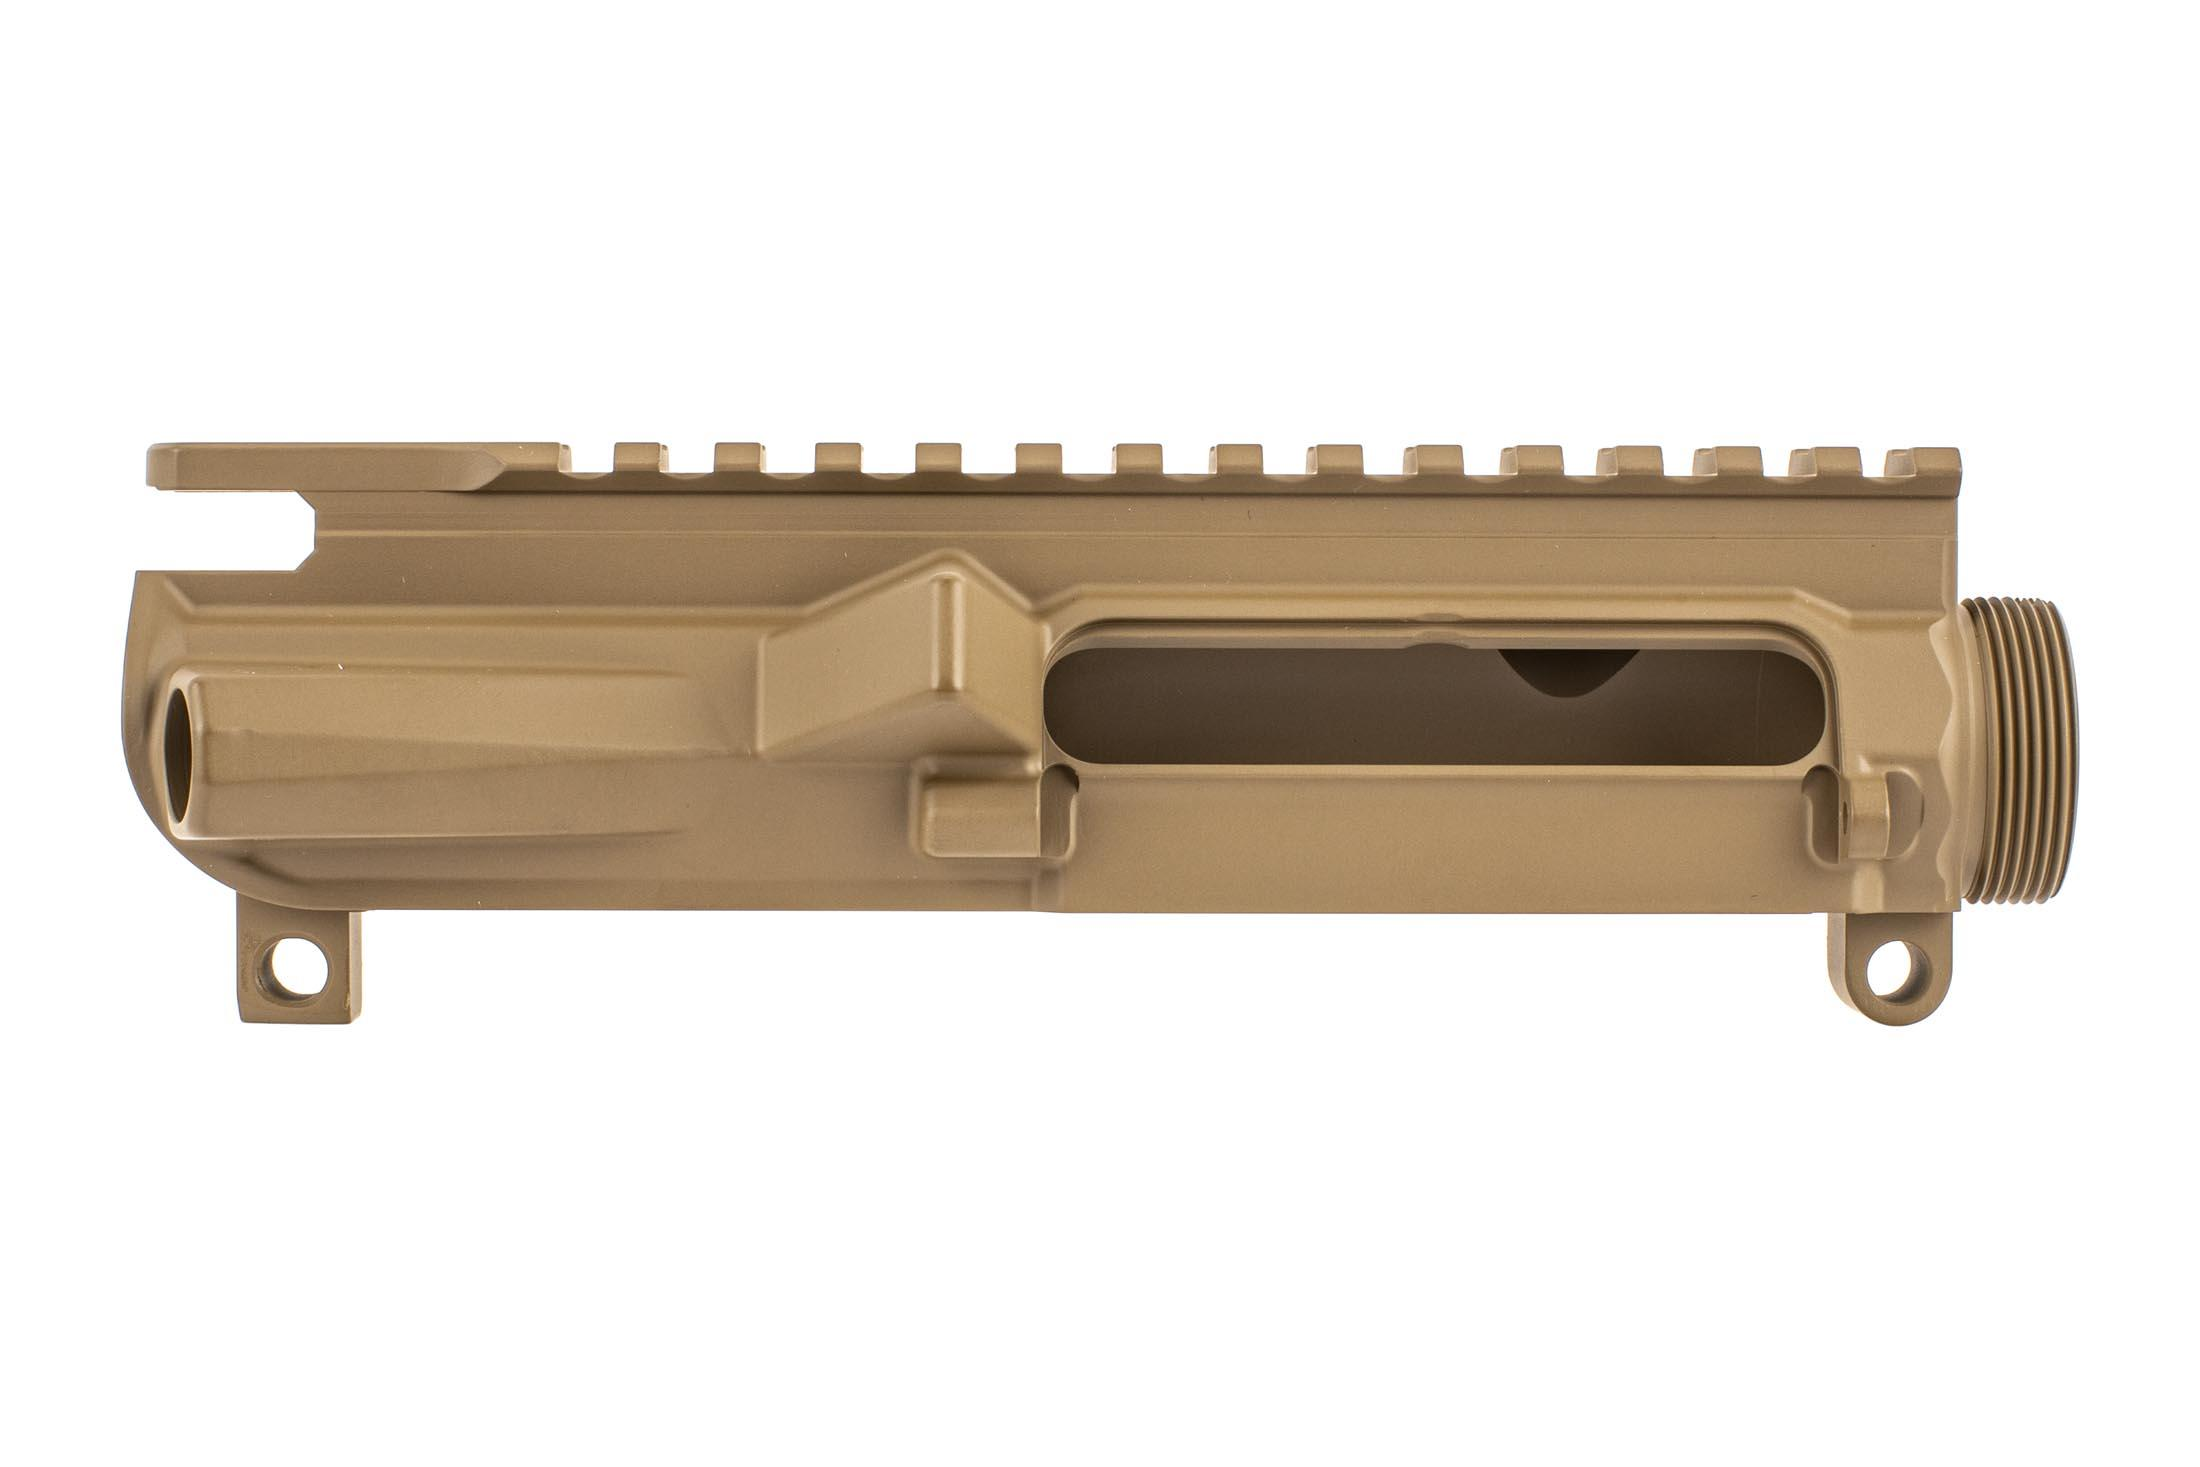 Aero Precision M4E1 threaded stripped upper receiver with Texas edition engraving in FDE